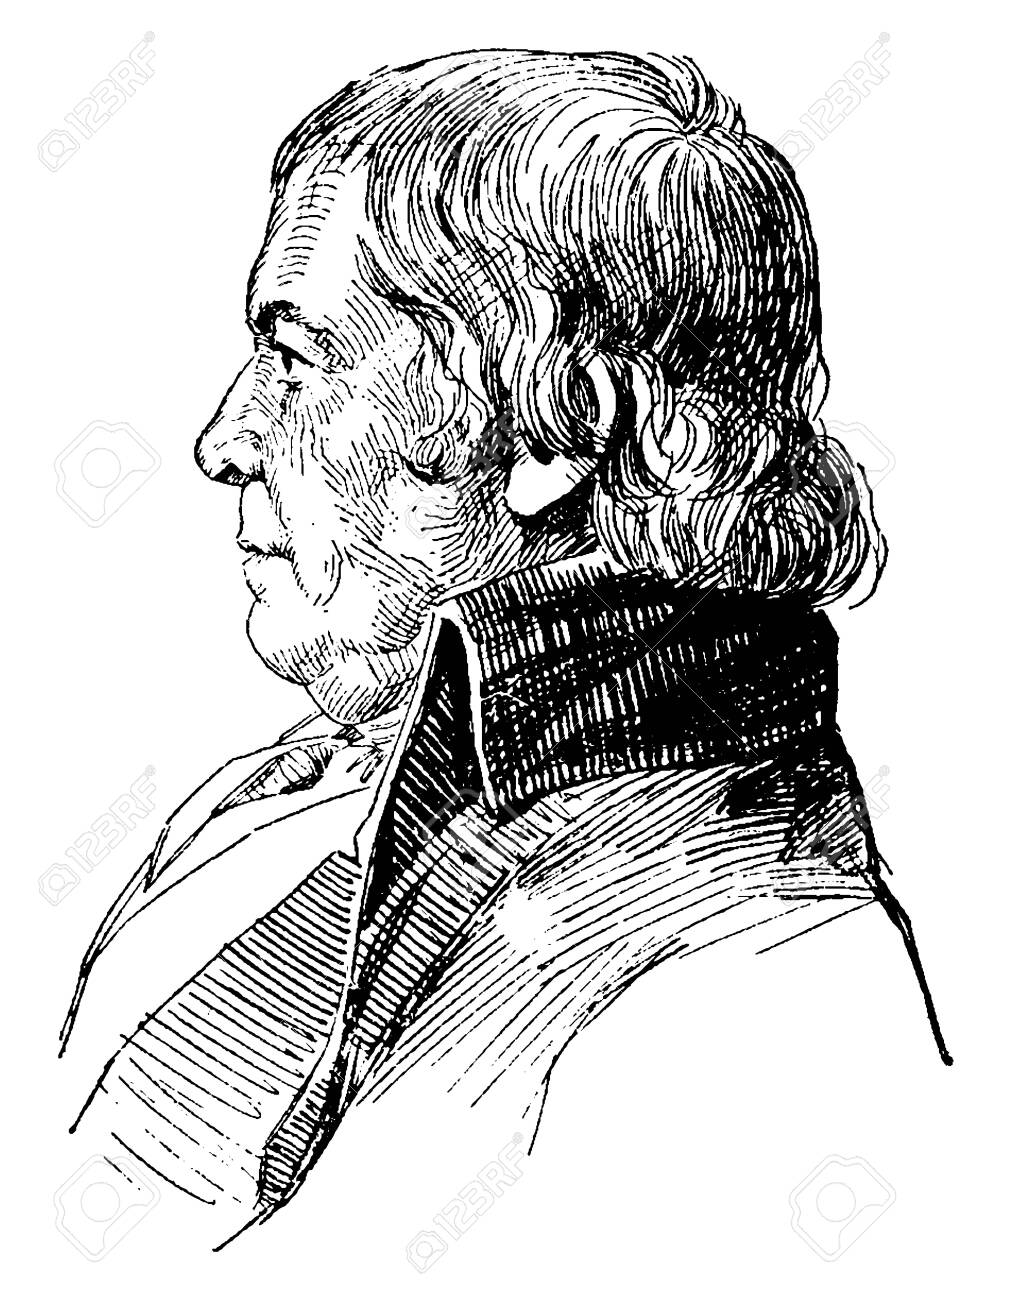 Paul Revere, 1734-1818, he was an American silversmith, engraver, industrialist, and patriot in the American revolution, vintage line drawing or engraving illustration - 133486060